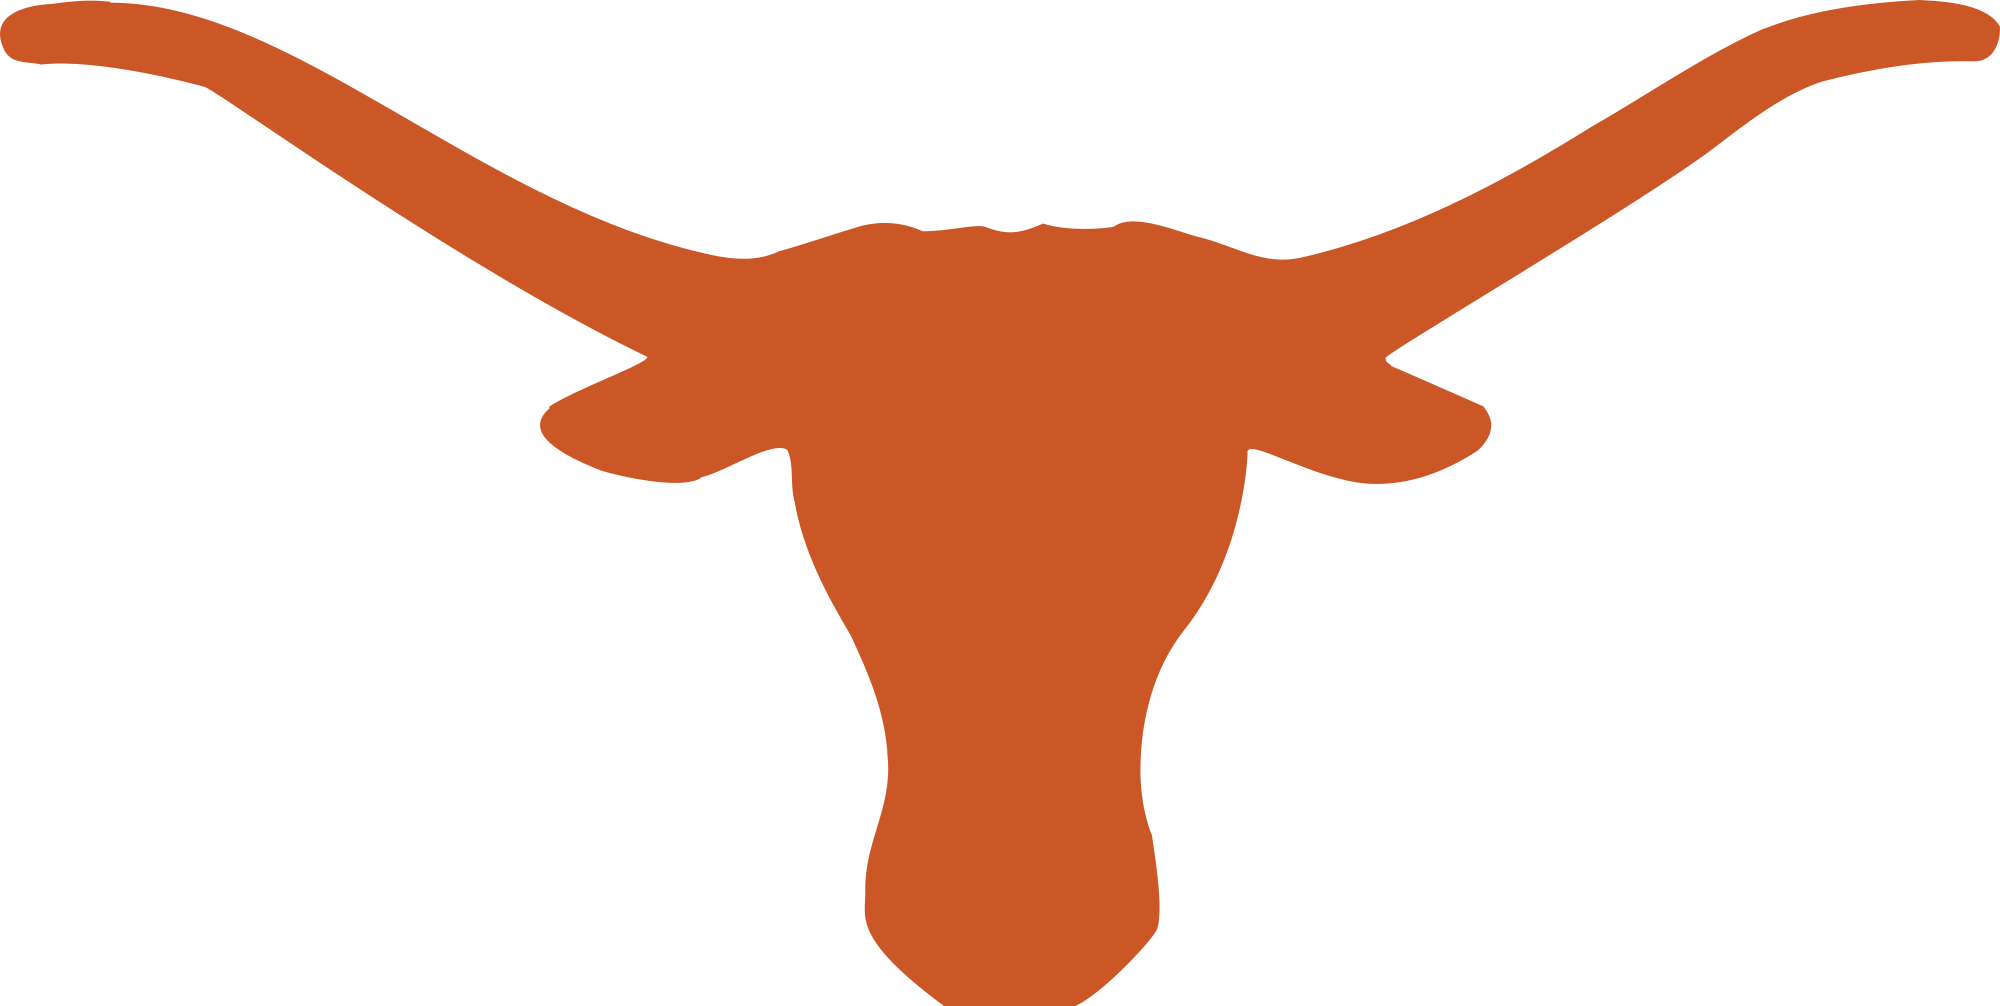 Longhorn svg coloring. The university of texas